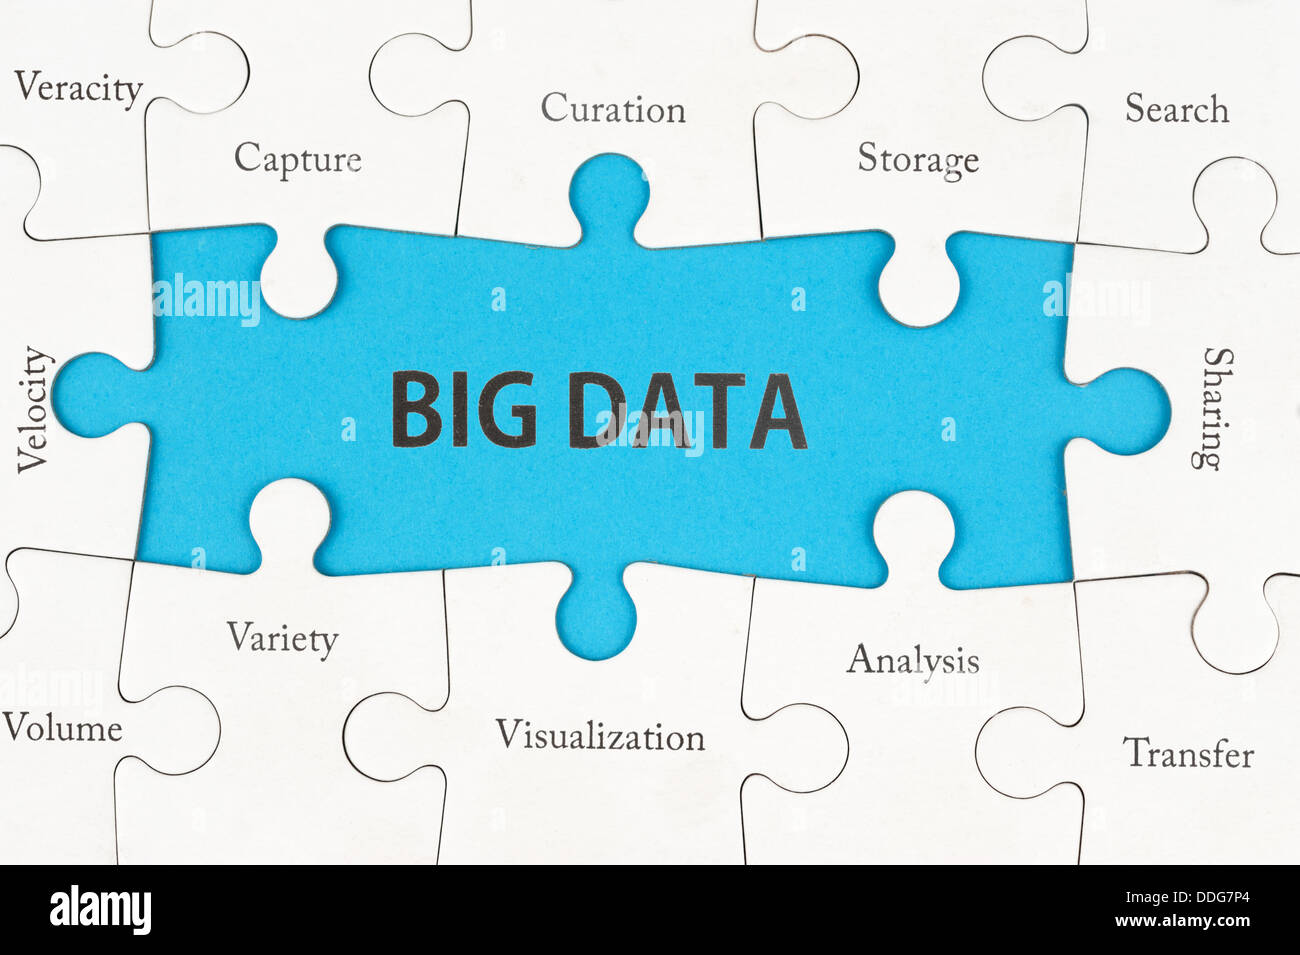 Big data concept words on group of jigsaw puzzle pieces - Stock Image